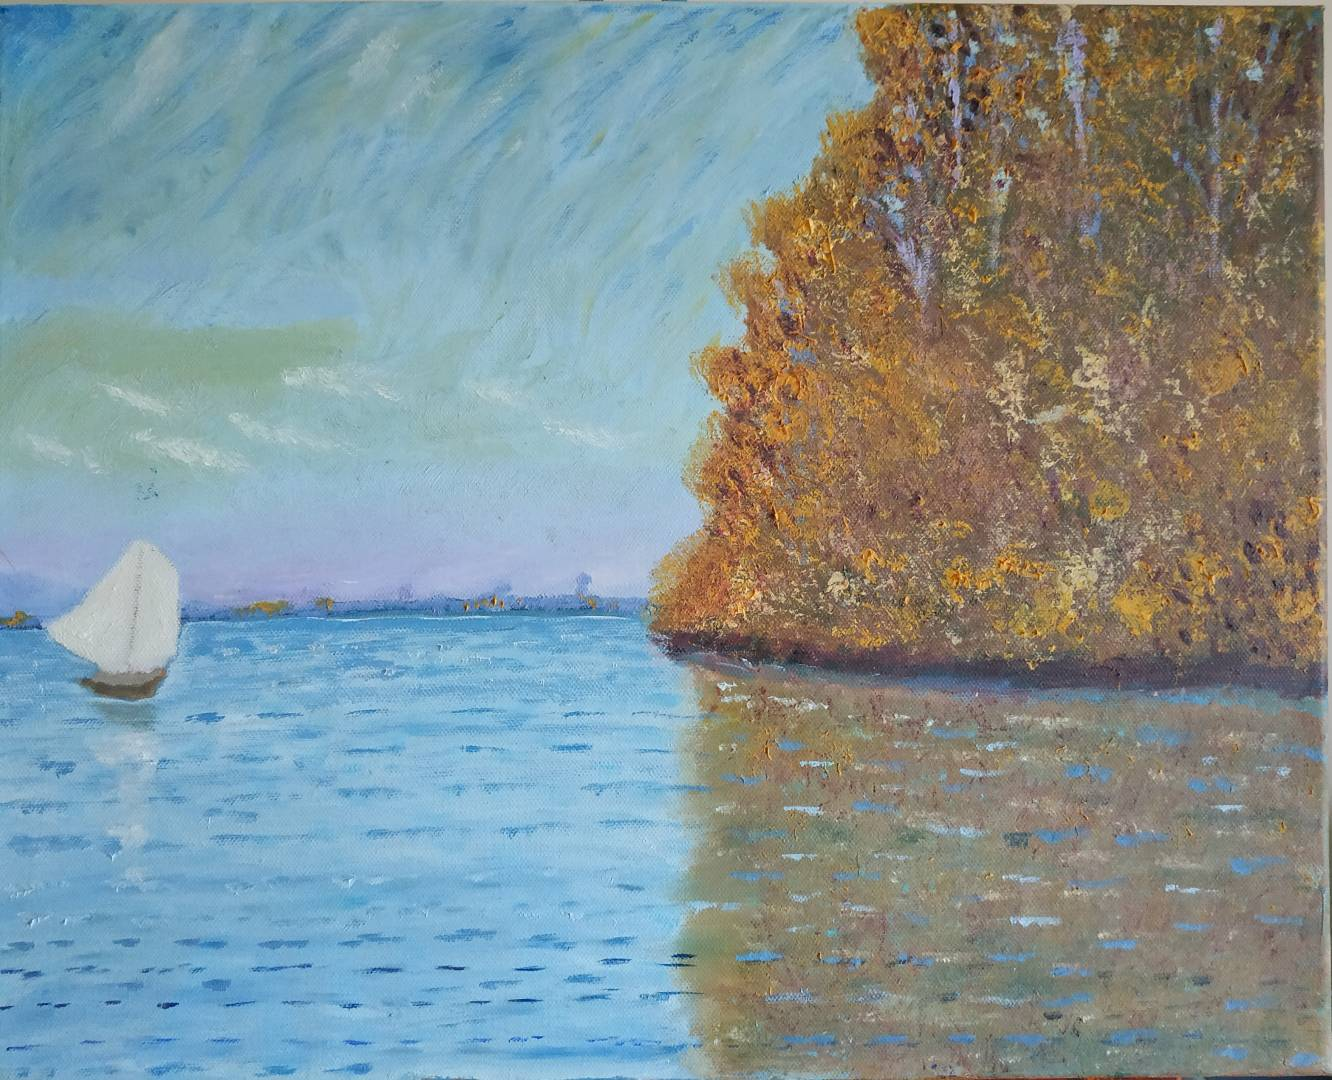 Post Monet Oil Painting of a single boat for sale by Irish Artist